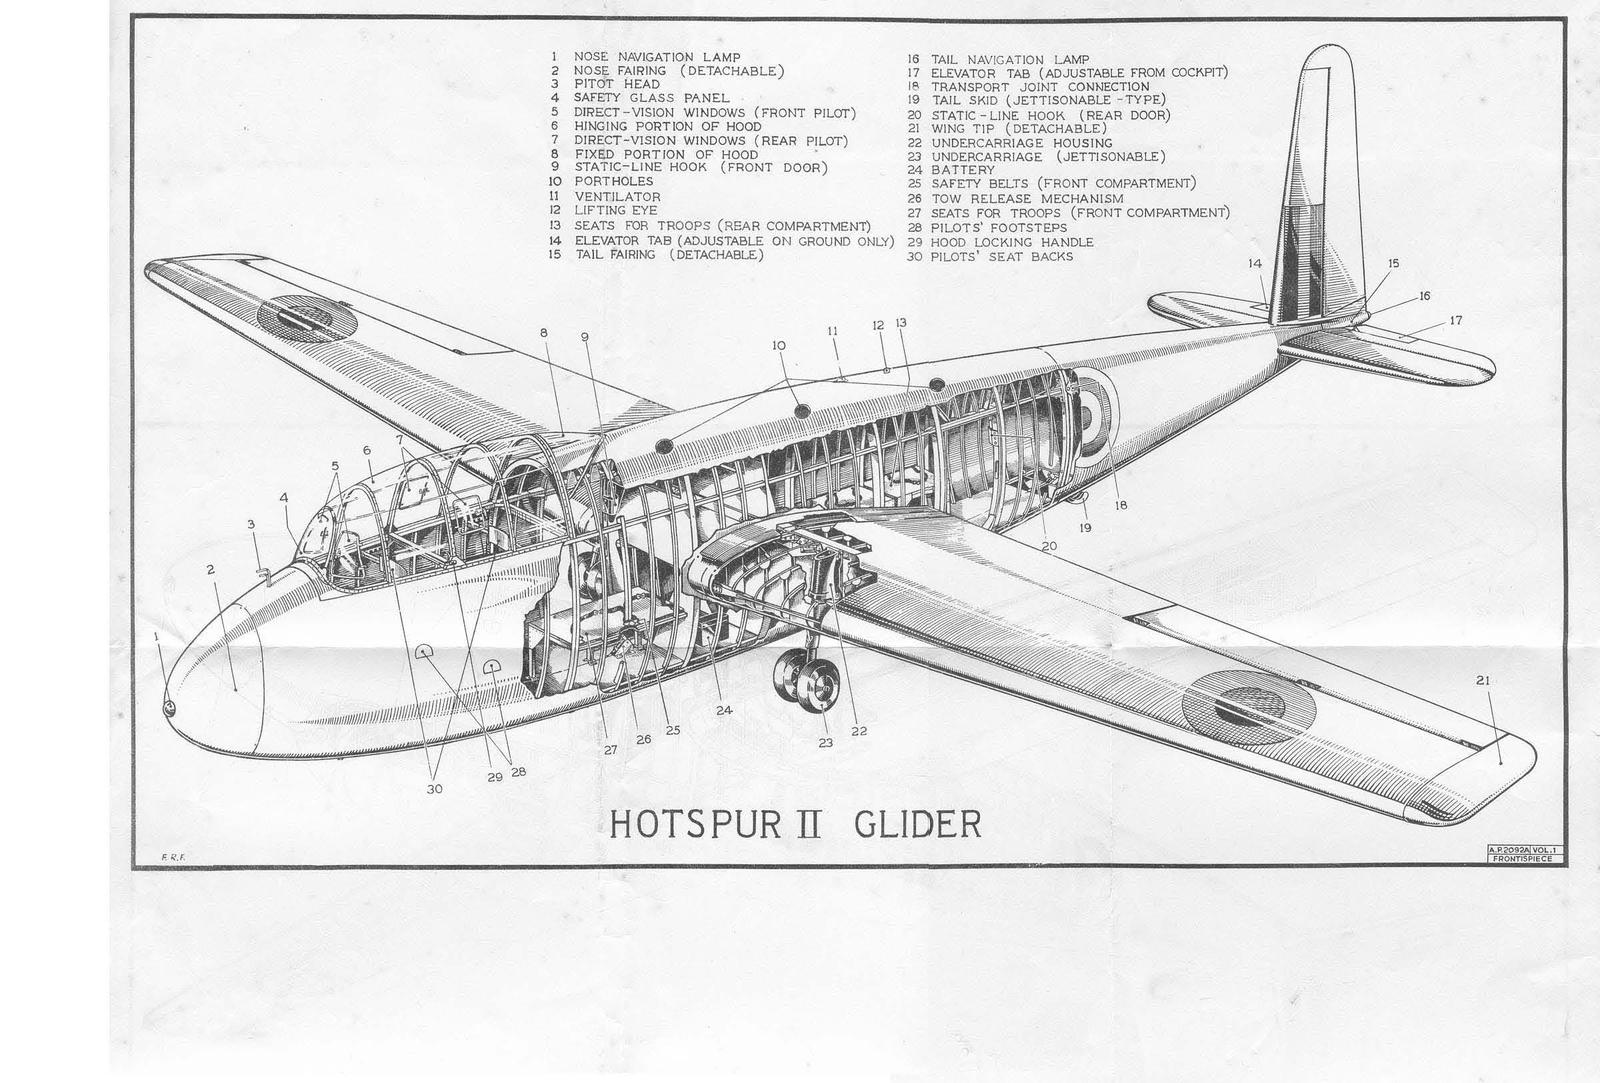 Attachment Browser Hotspur Ii Glider Cutaway Drawing Pdf